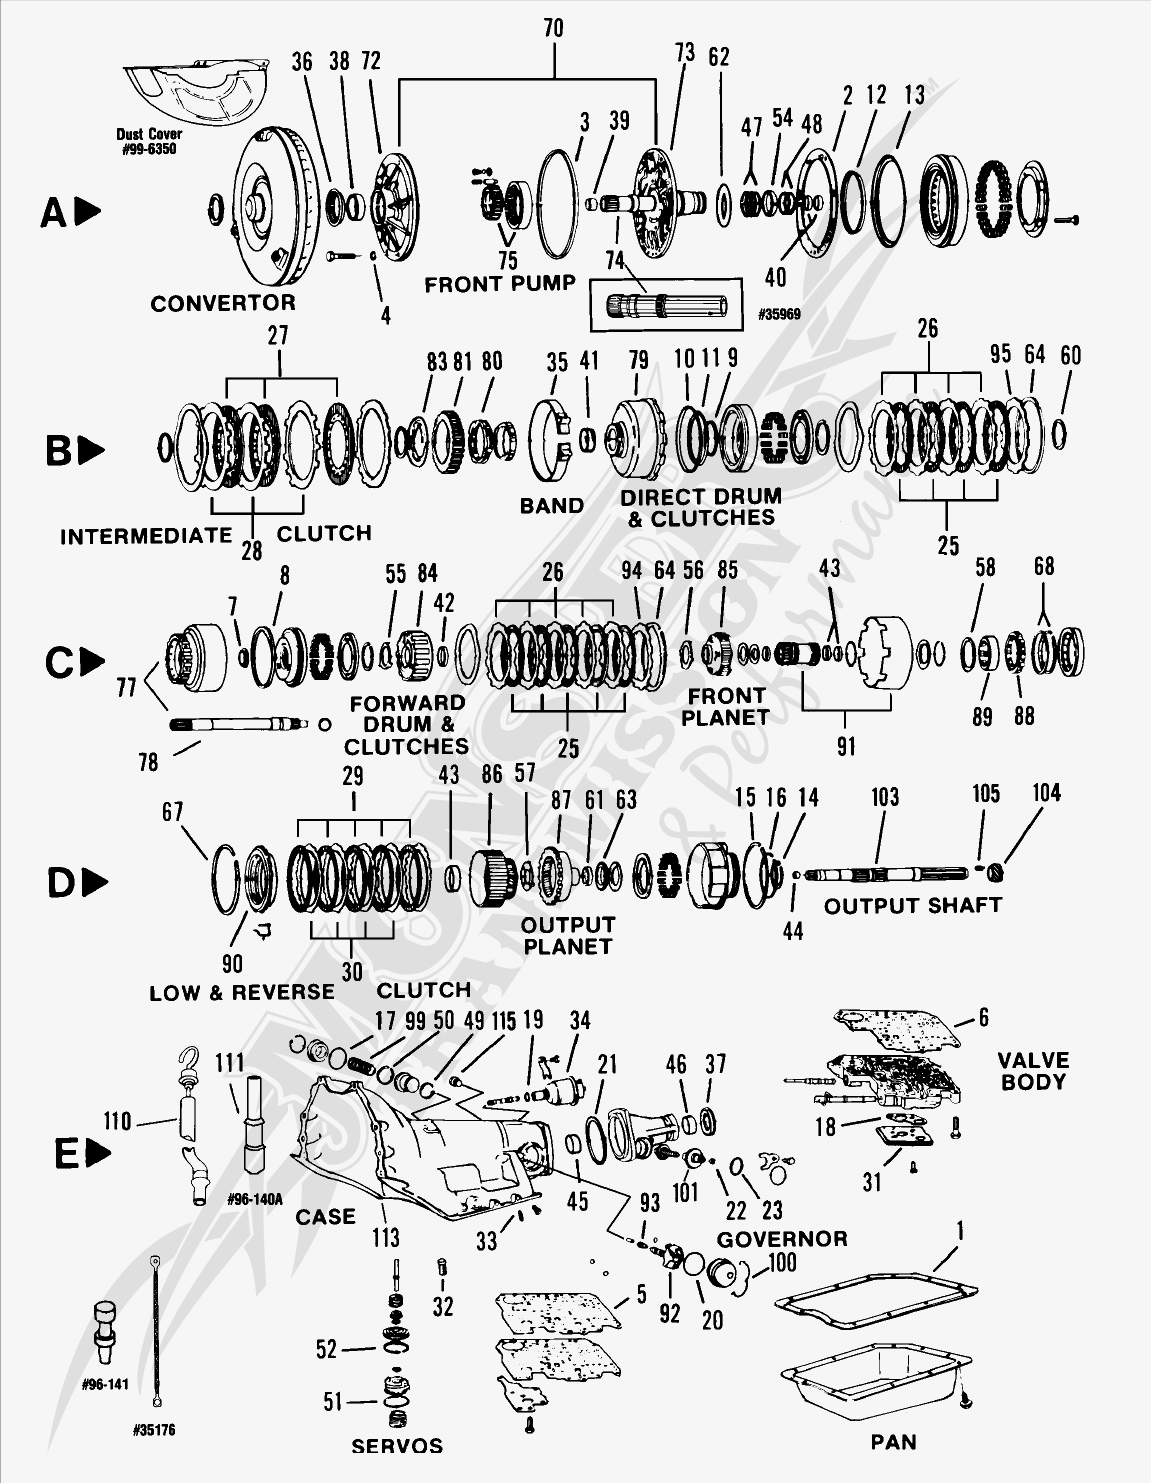 Mac Control Valve Wiring Diagram Wire Data Schema Asco Turbo 350 Parts Autos Post 4 Solenoid